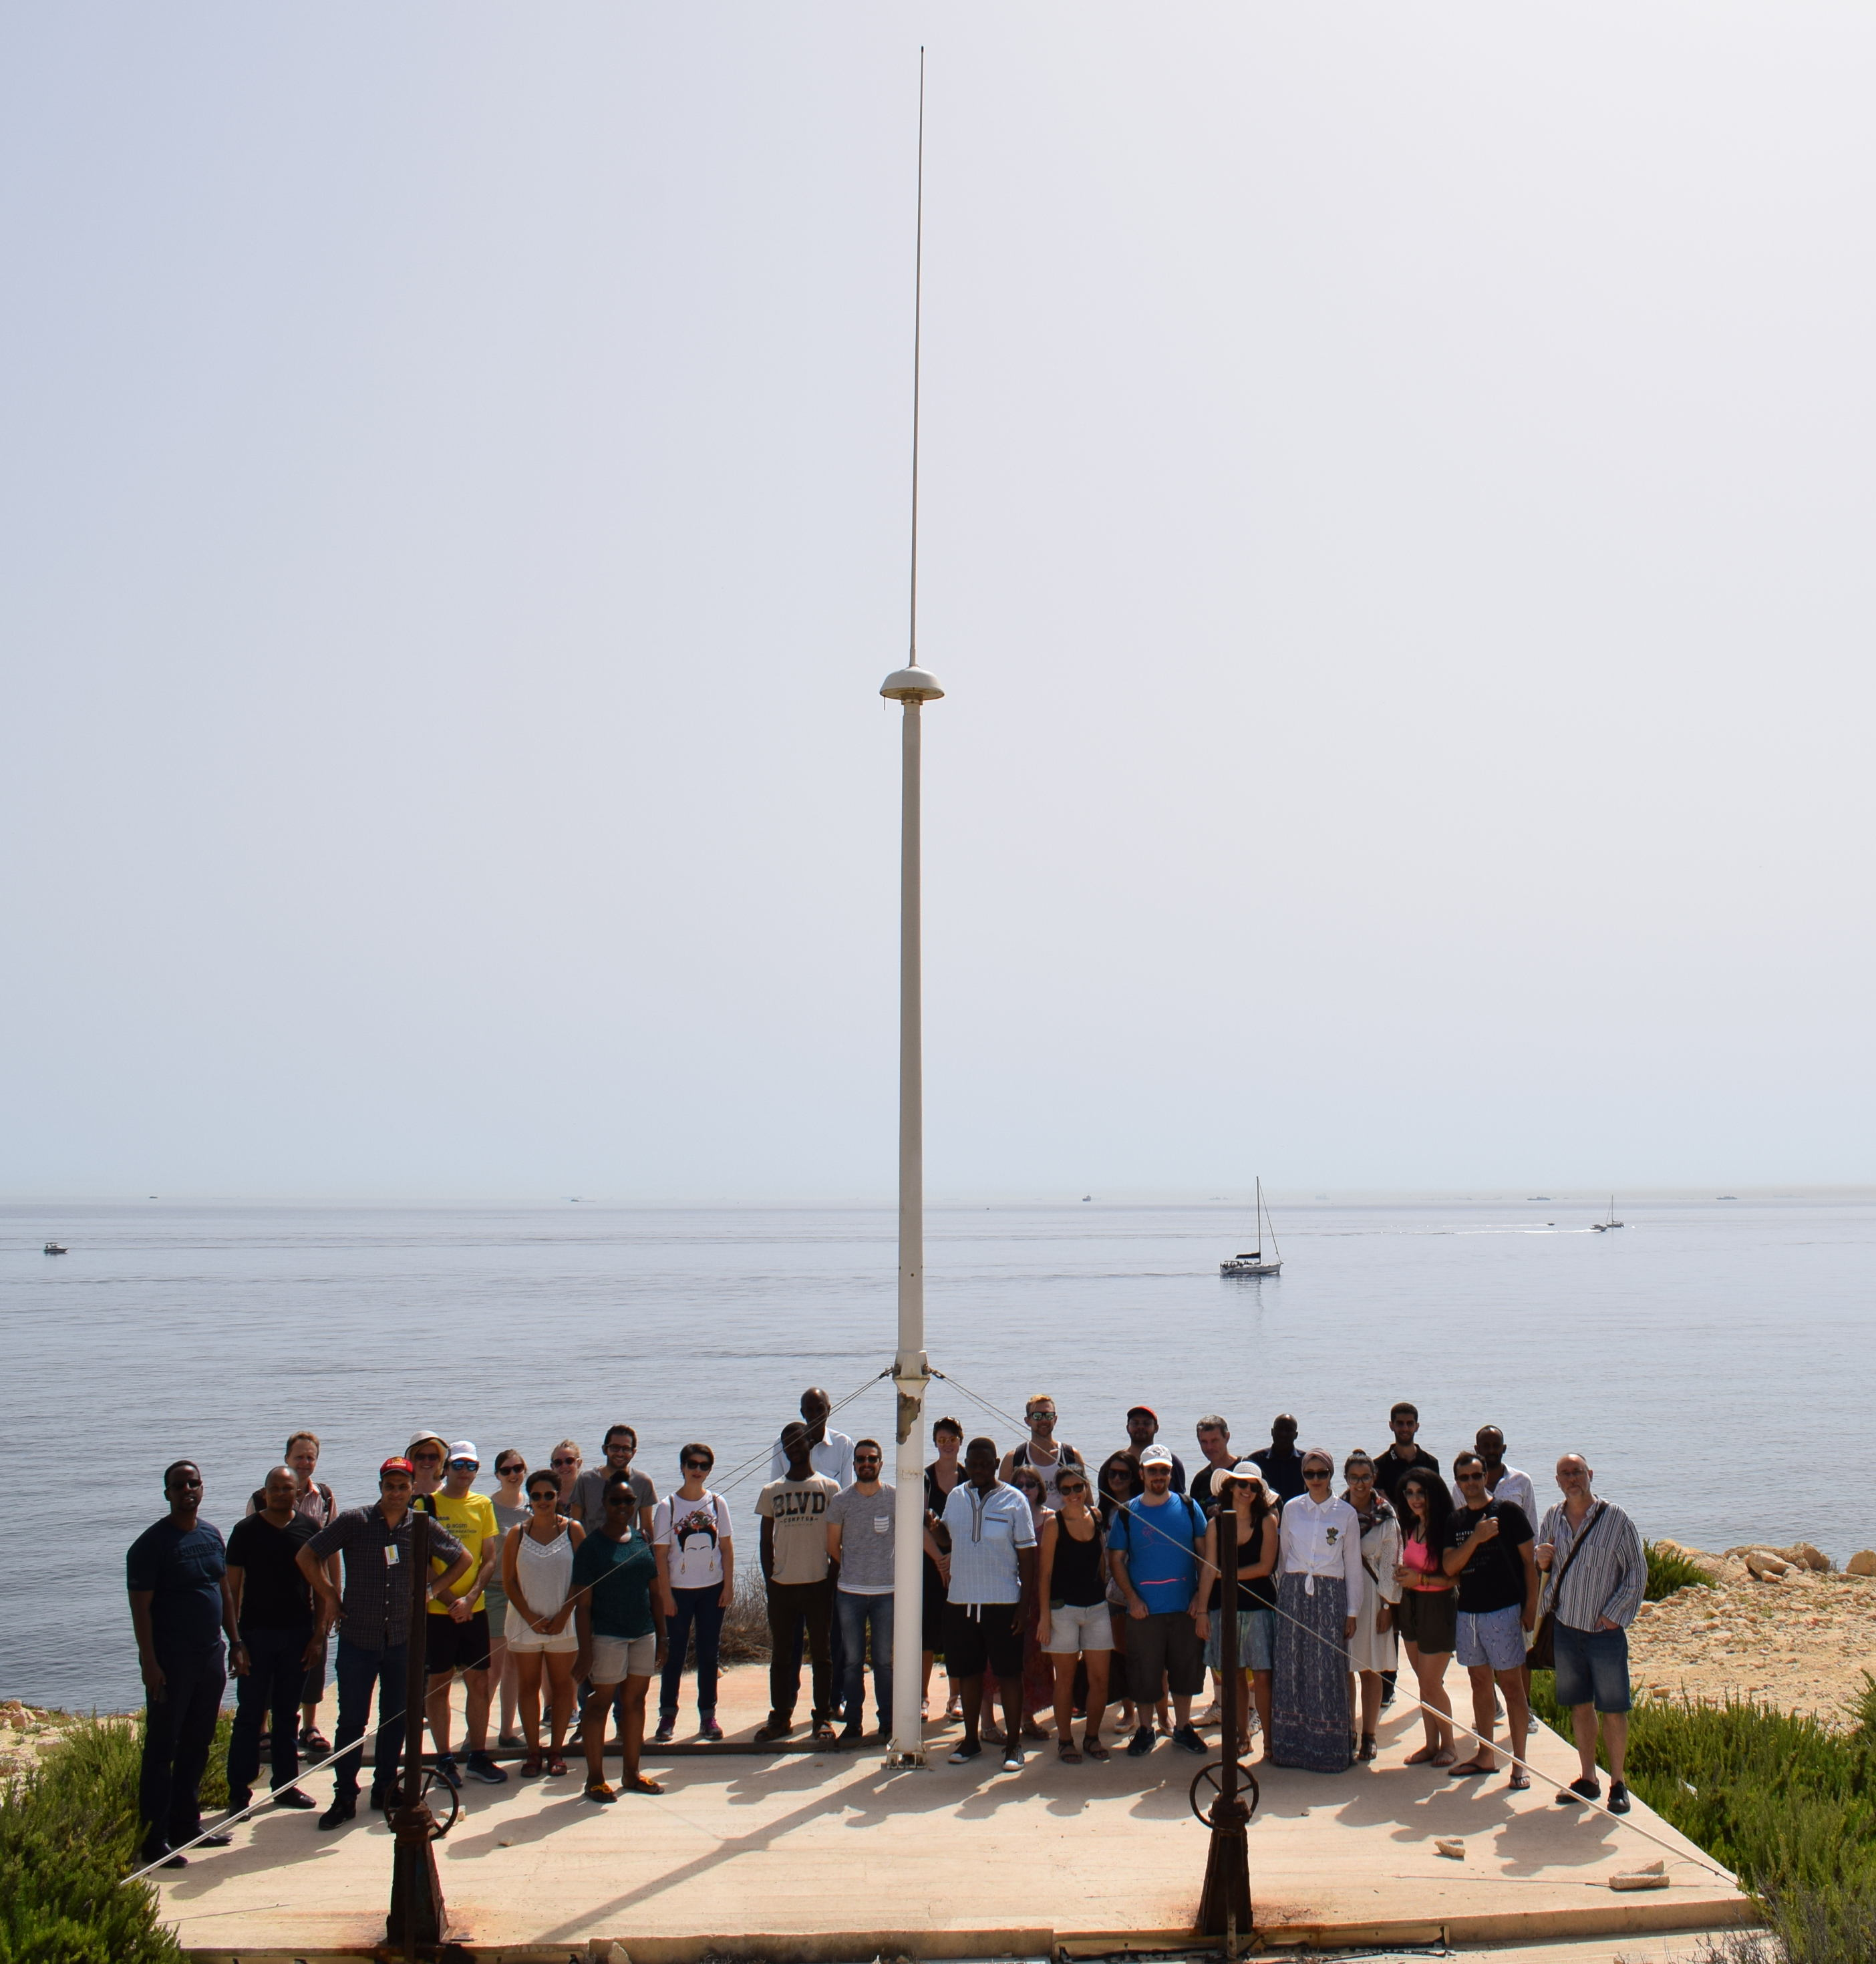 JERICO-NEXT summer school participants visit CALYPSO HF radar site